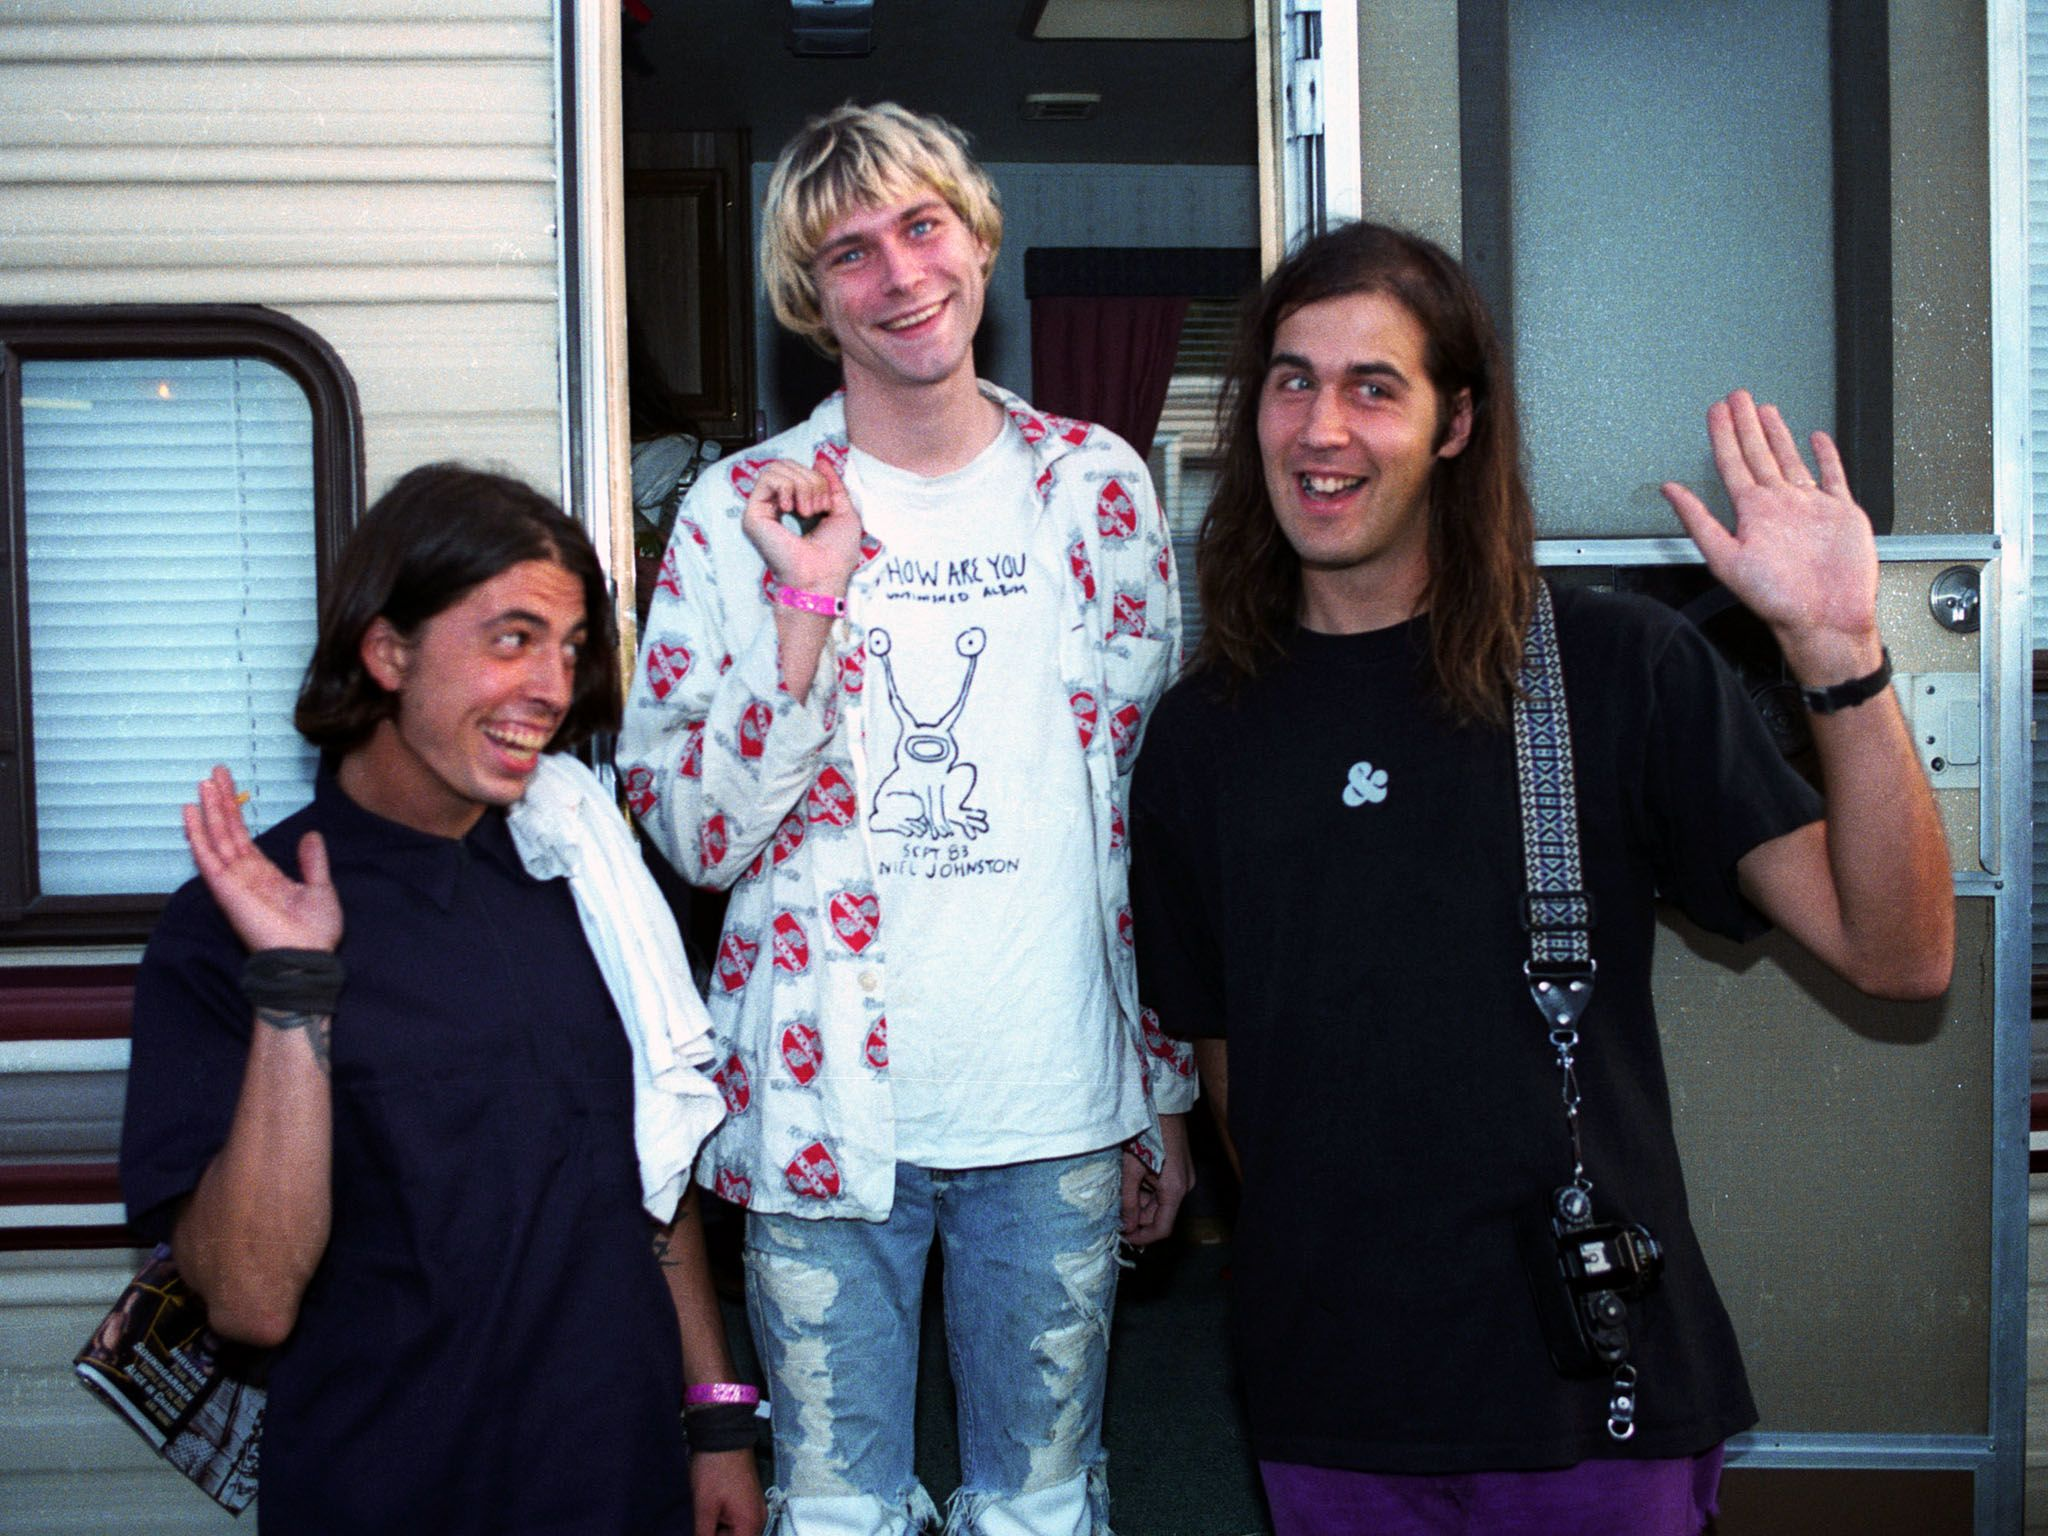 Dave Grohl, Kurt Cobain and Kirst Novoselic of Nirvana. This image is from Generation X. [Photo of the day - April 2016]